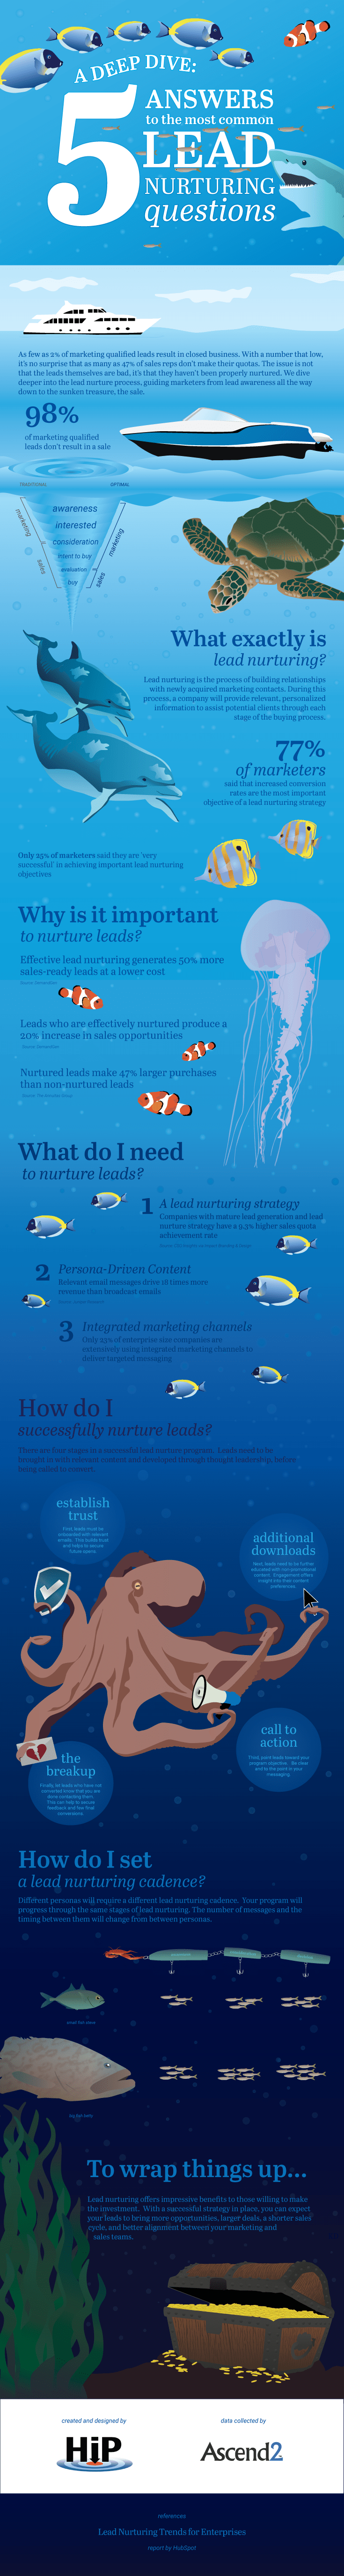 Infographic – A Deep Dive - 5 Answers to the Most Common Lead Nurturing Questions